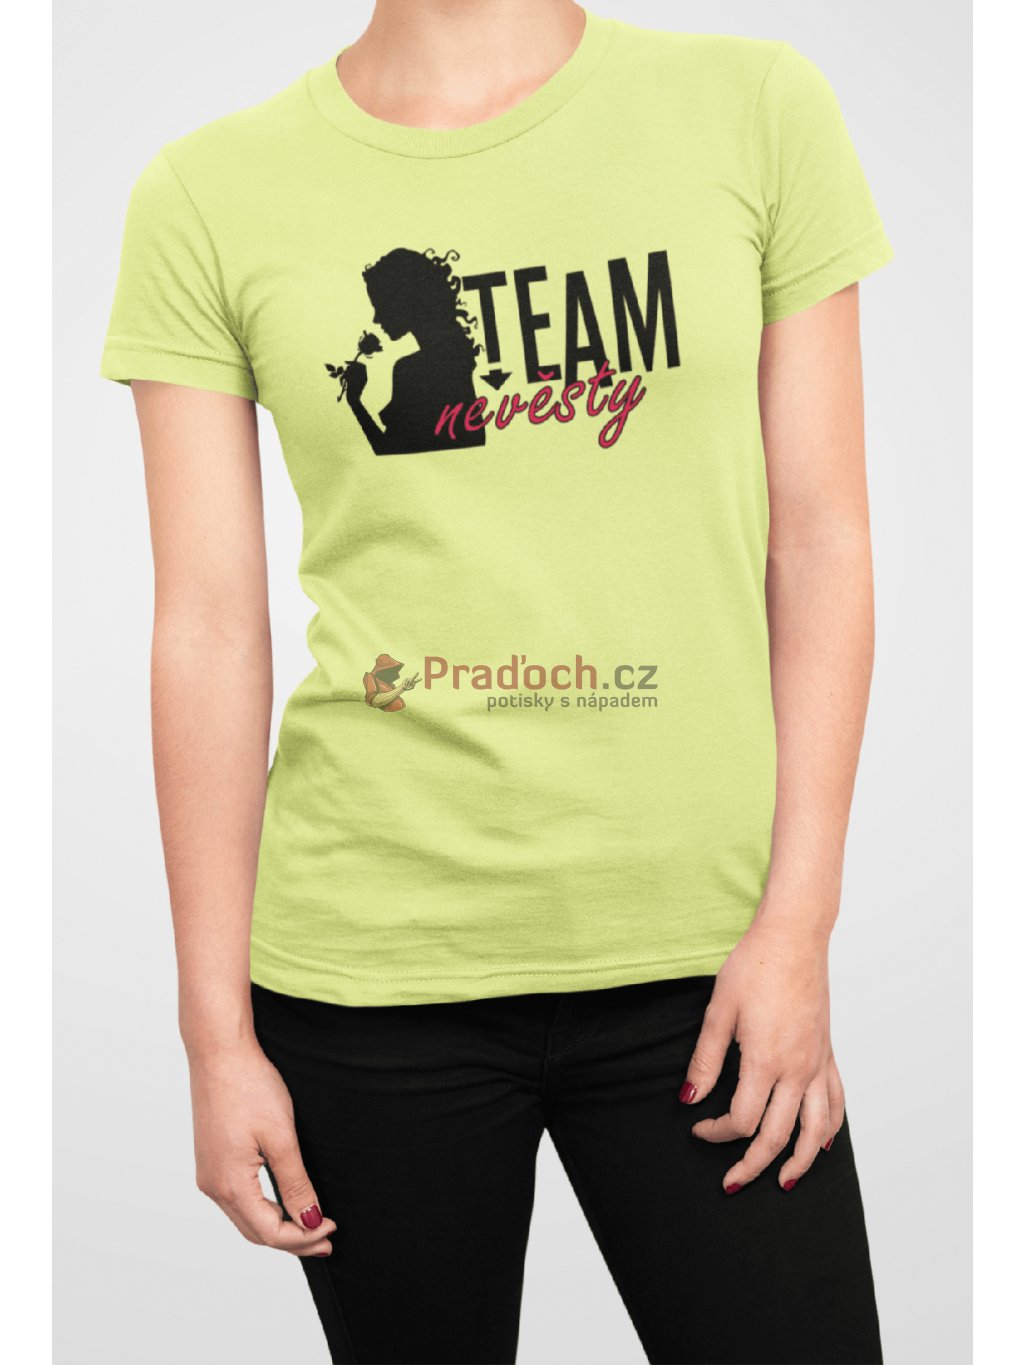 team nevesty rose shirt min